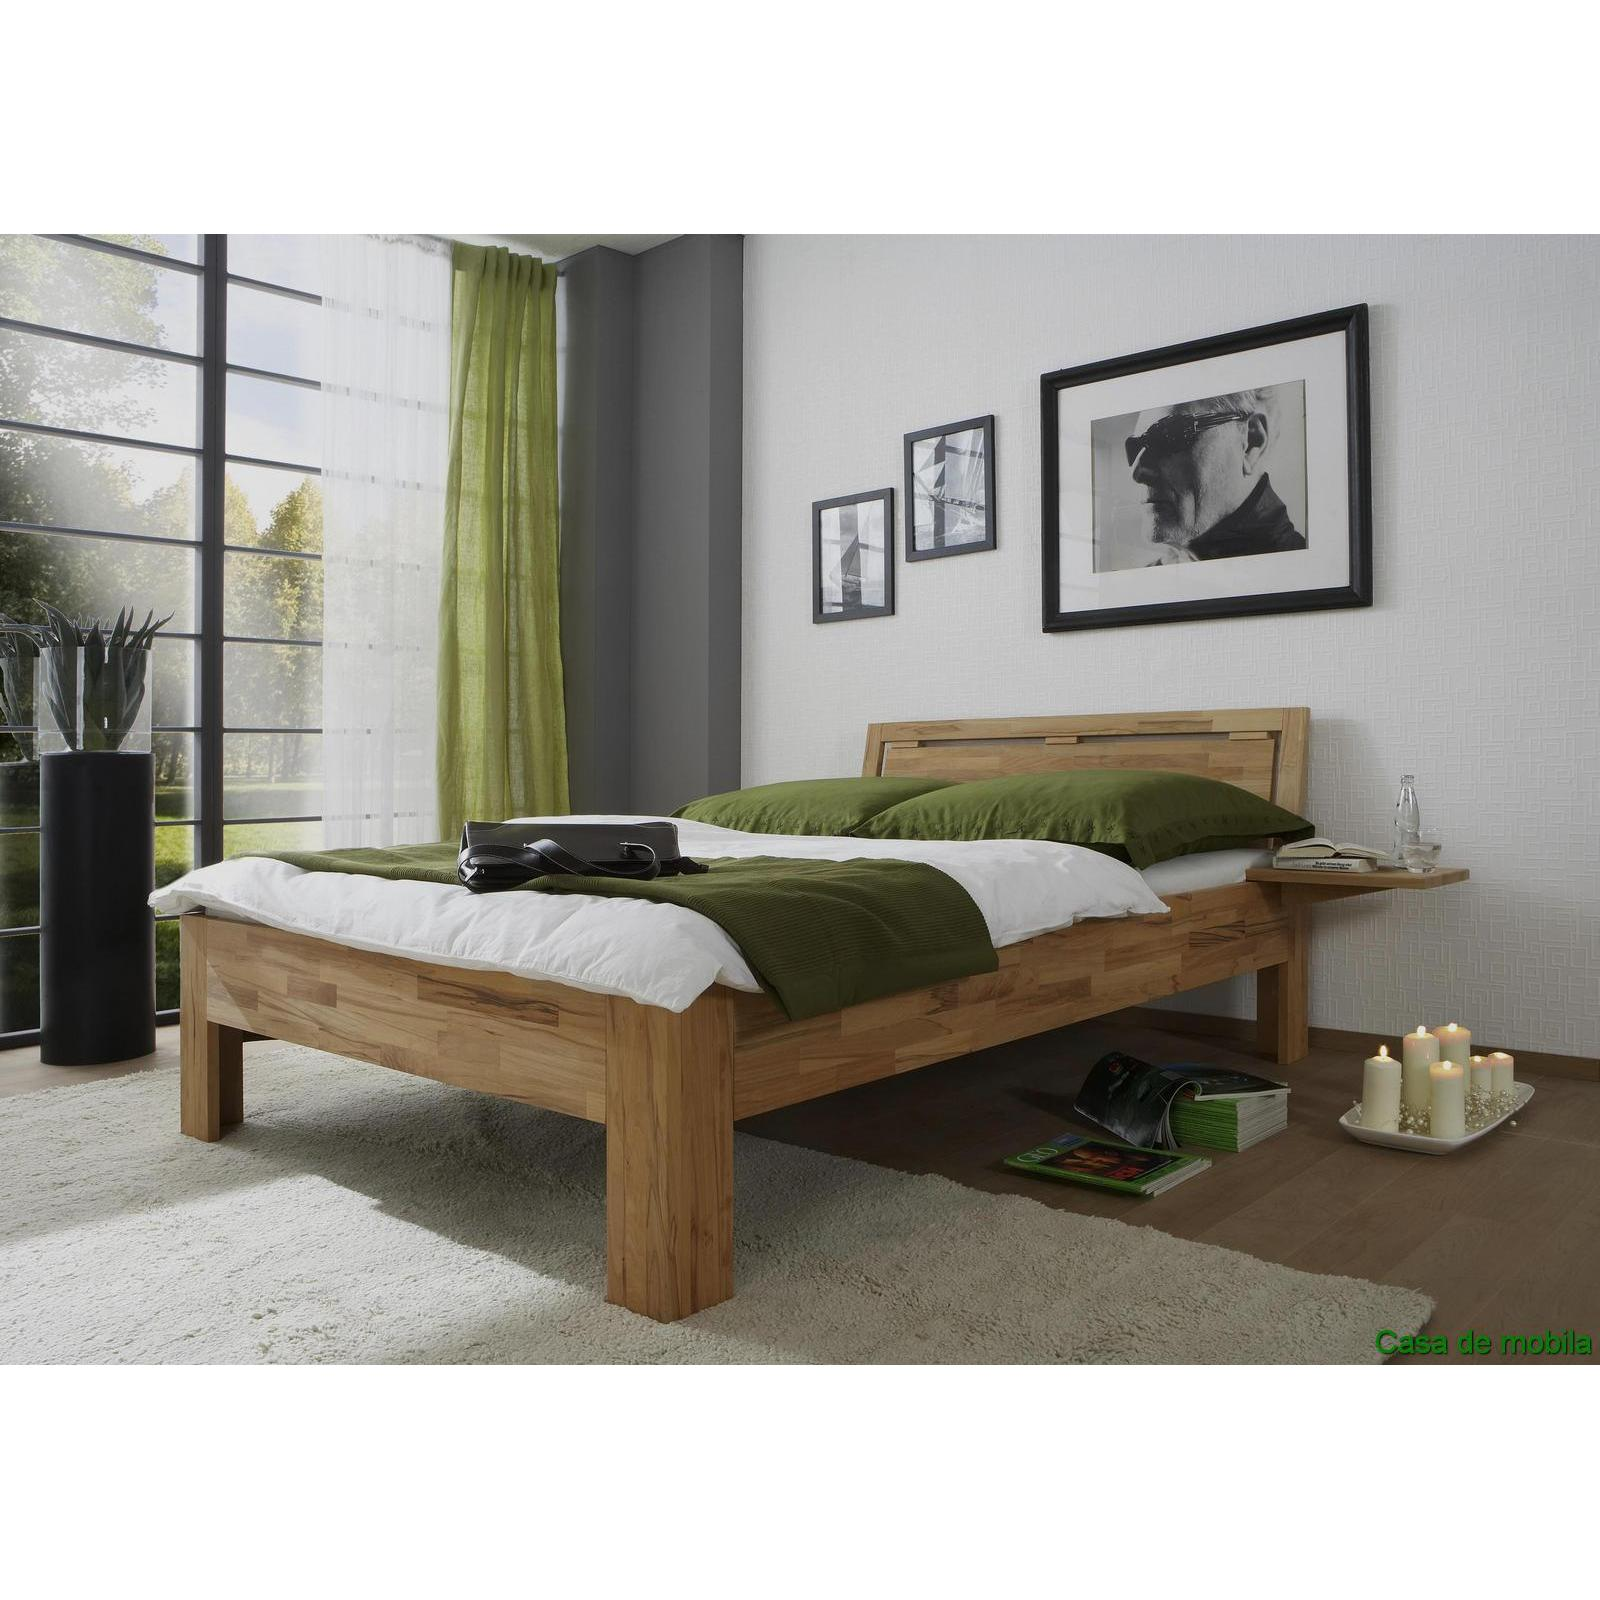 echtholz bett kernbuche massiv ge lt 120x200 caro mit nachtkonsole. Black Bedroom Furniture Sets. Home Design Ideas